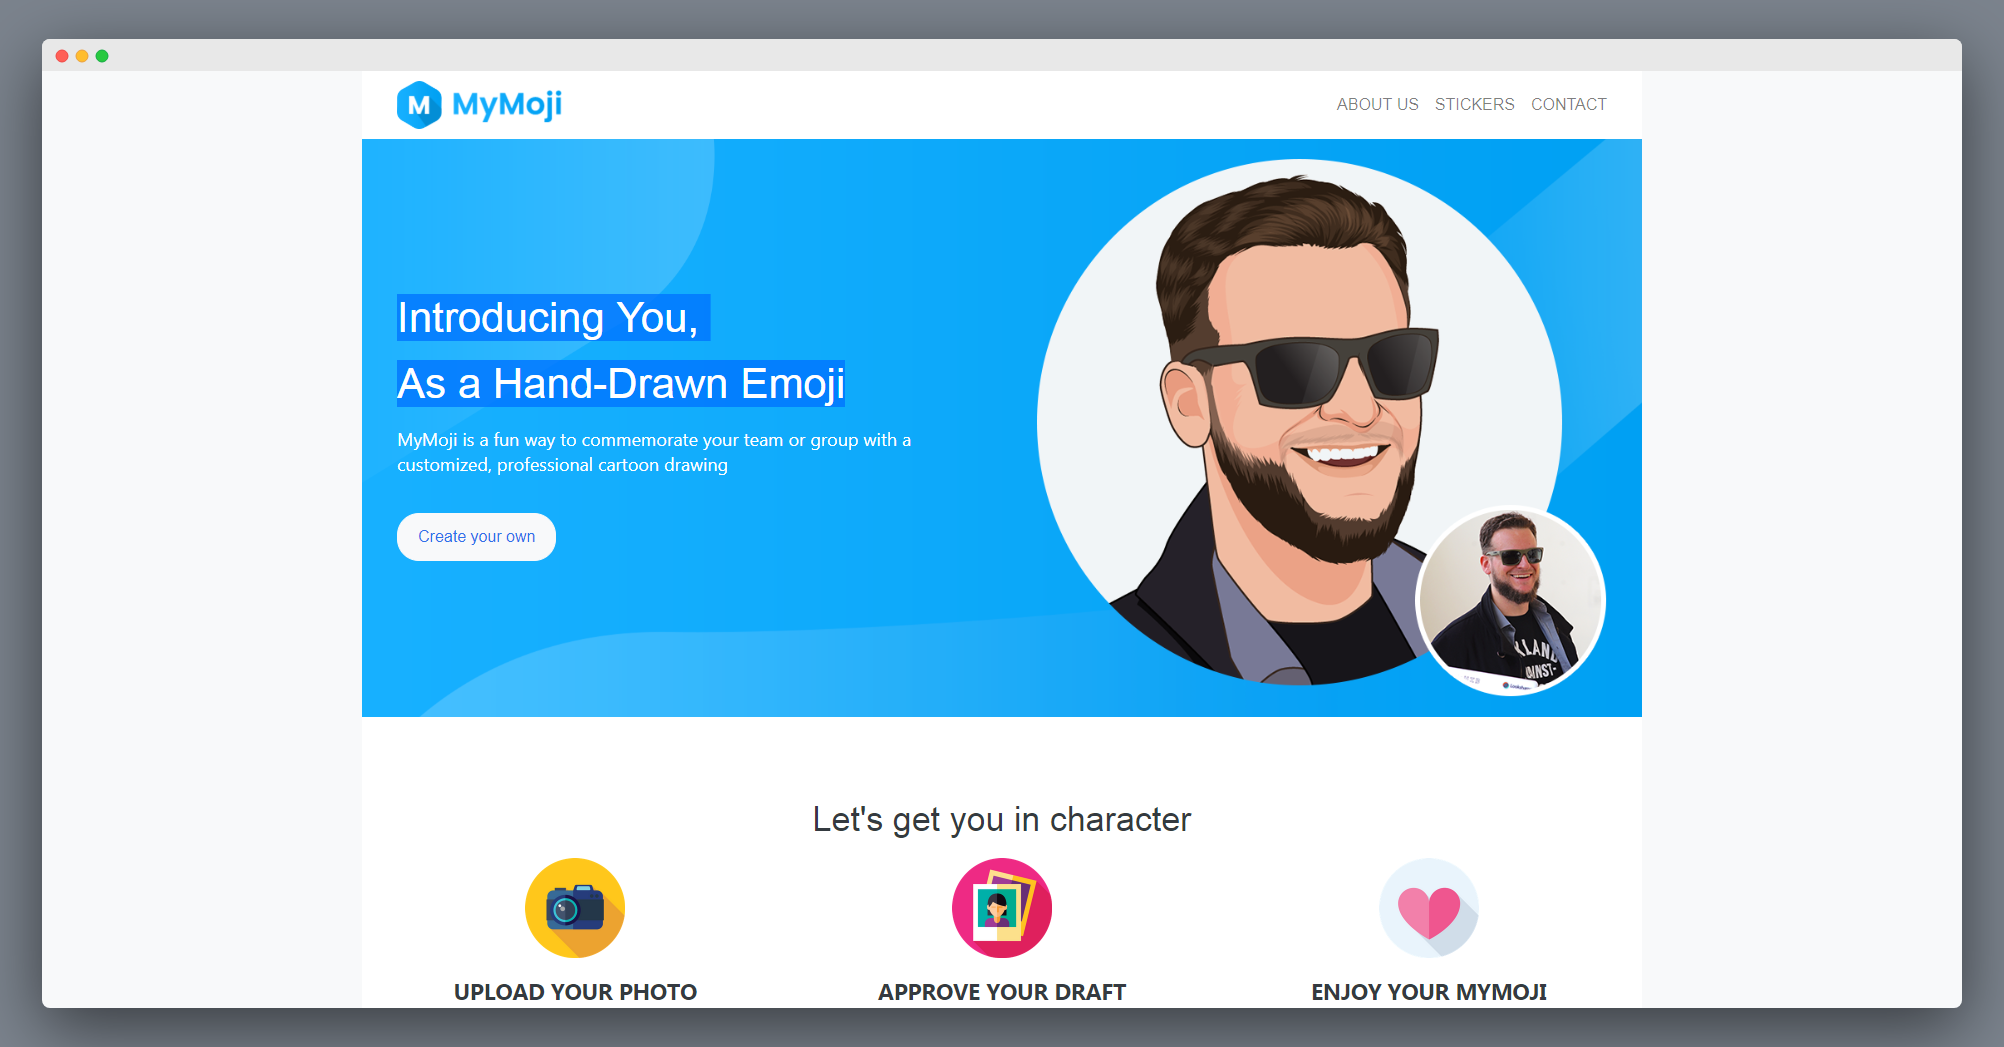 Introducing You, As a Hand-Drawn Emoji